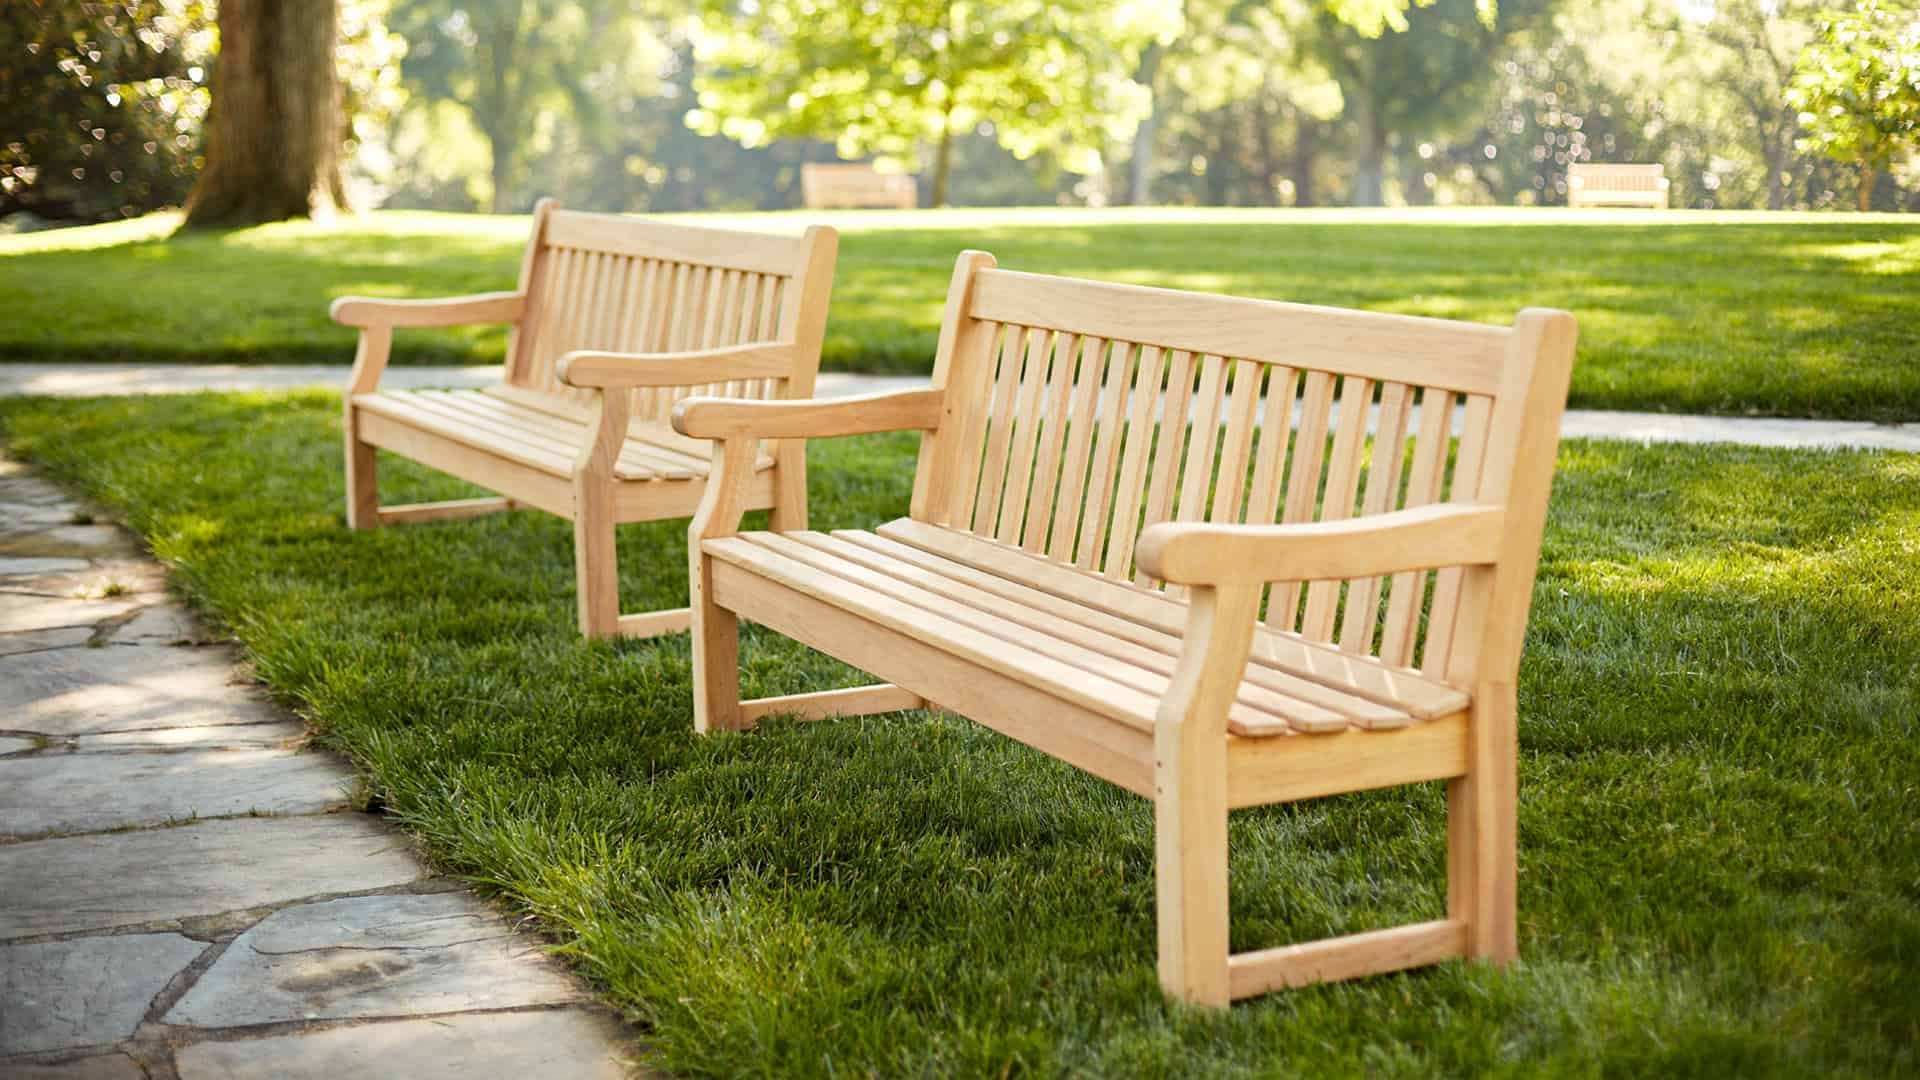 Outdoor Wood Bench Part - 41: Contract Benches